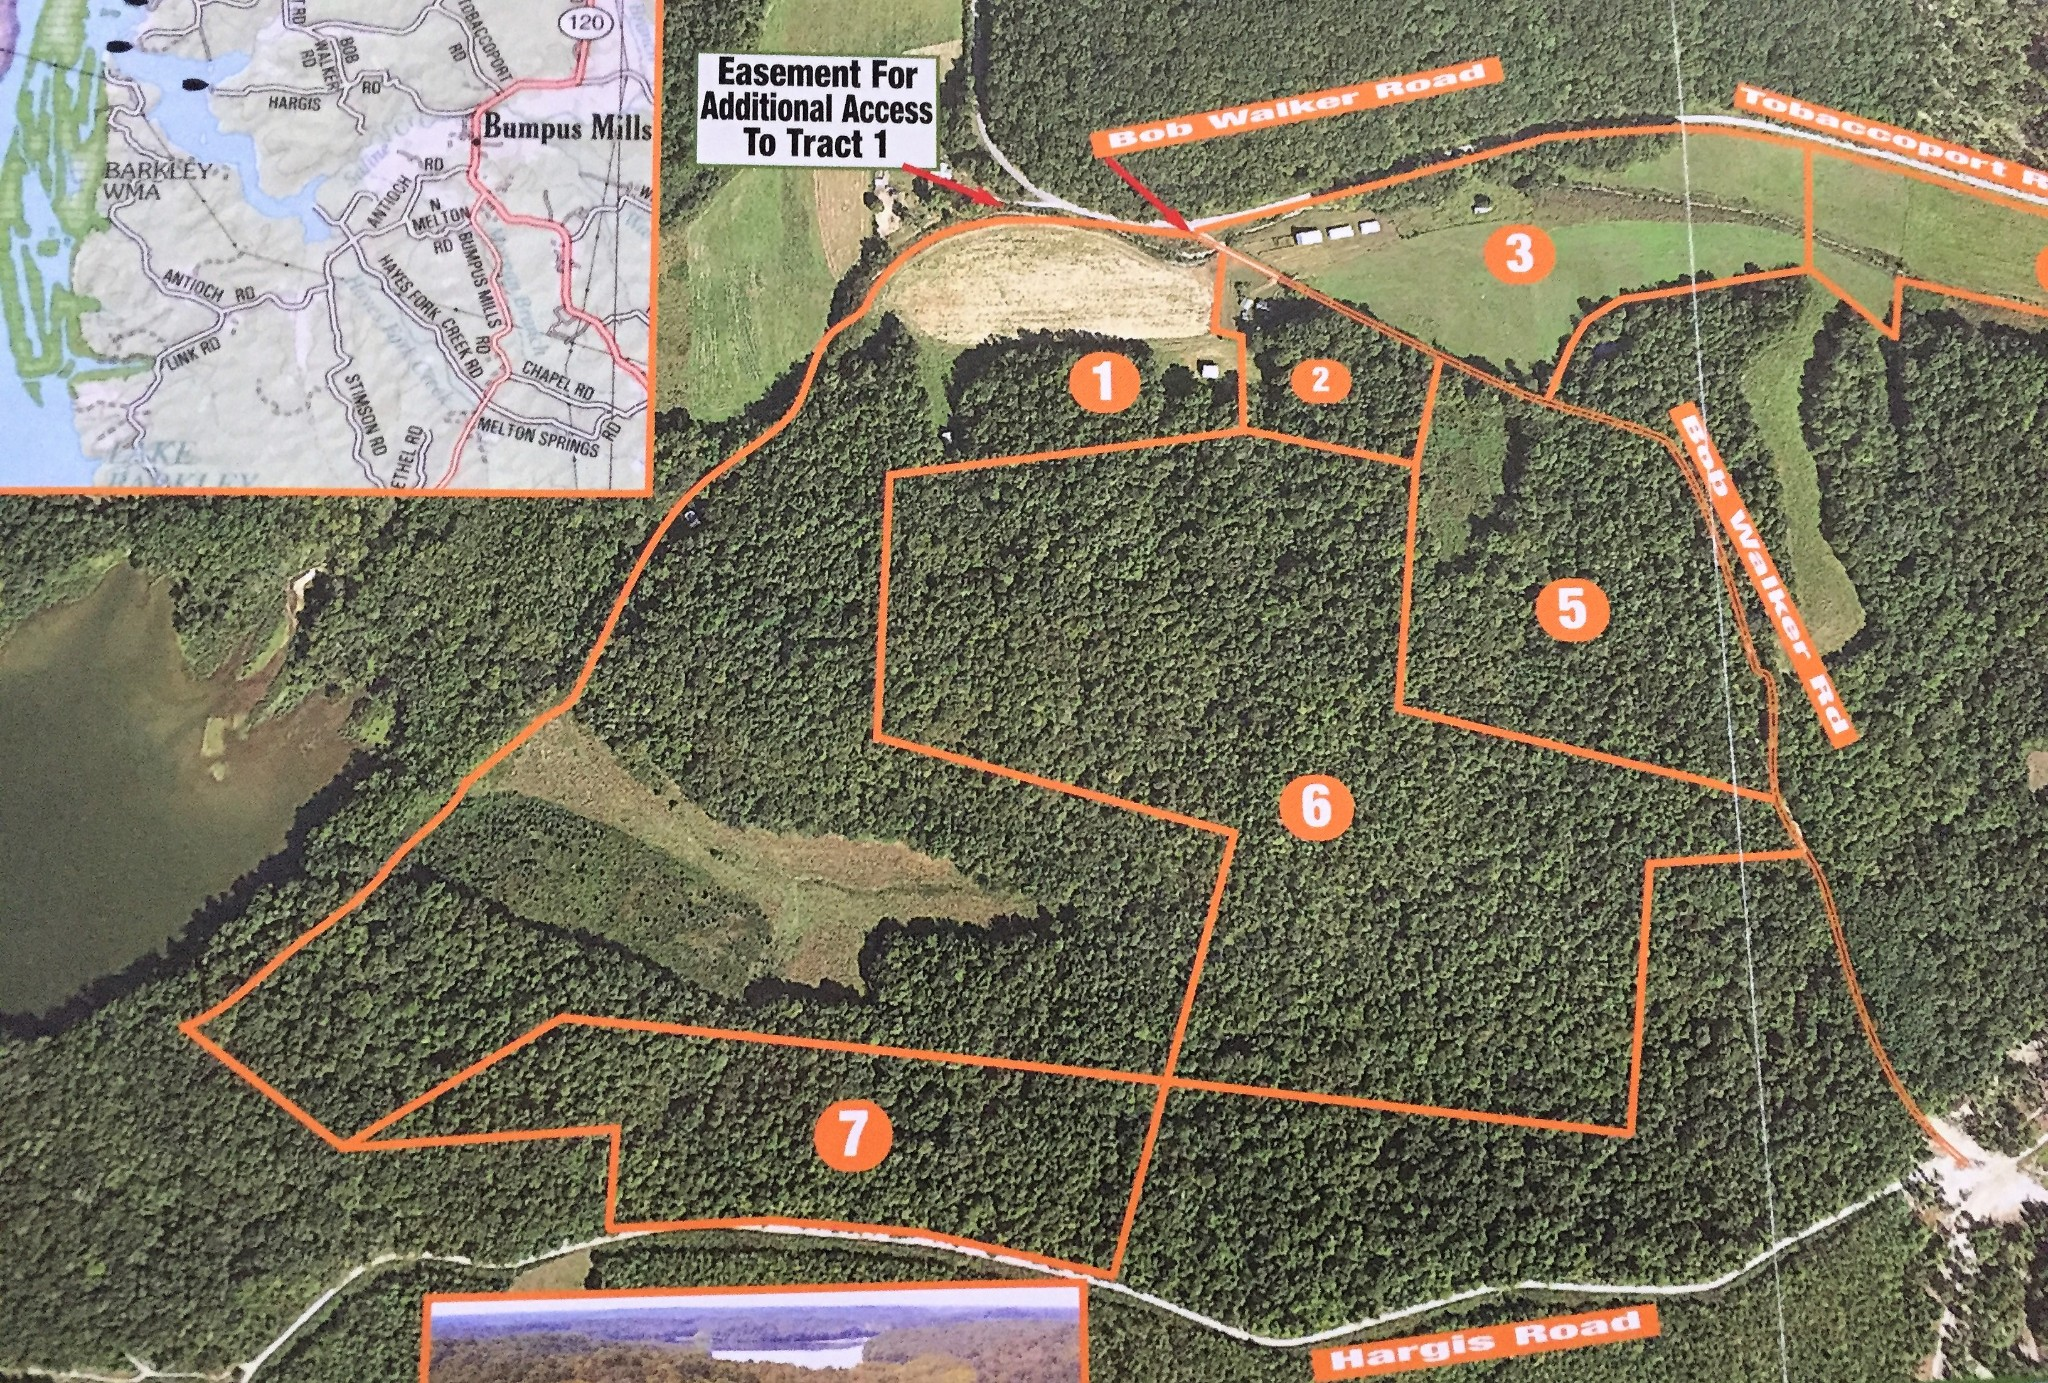 0 Hargis Rd. - Section 7, Bumpus Mills, TN 37028 - Bumpus Mills, TN real estate listing